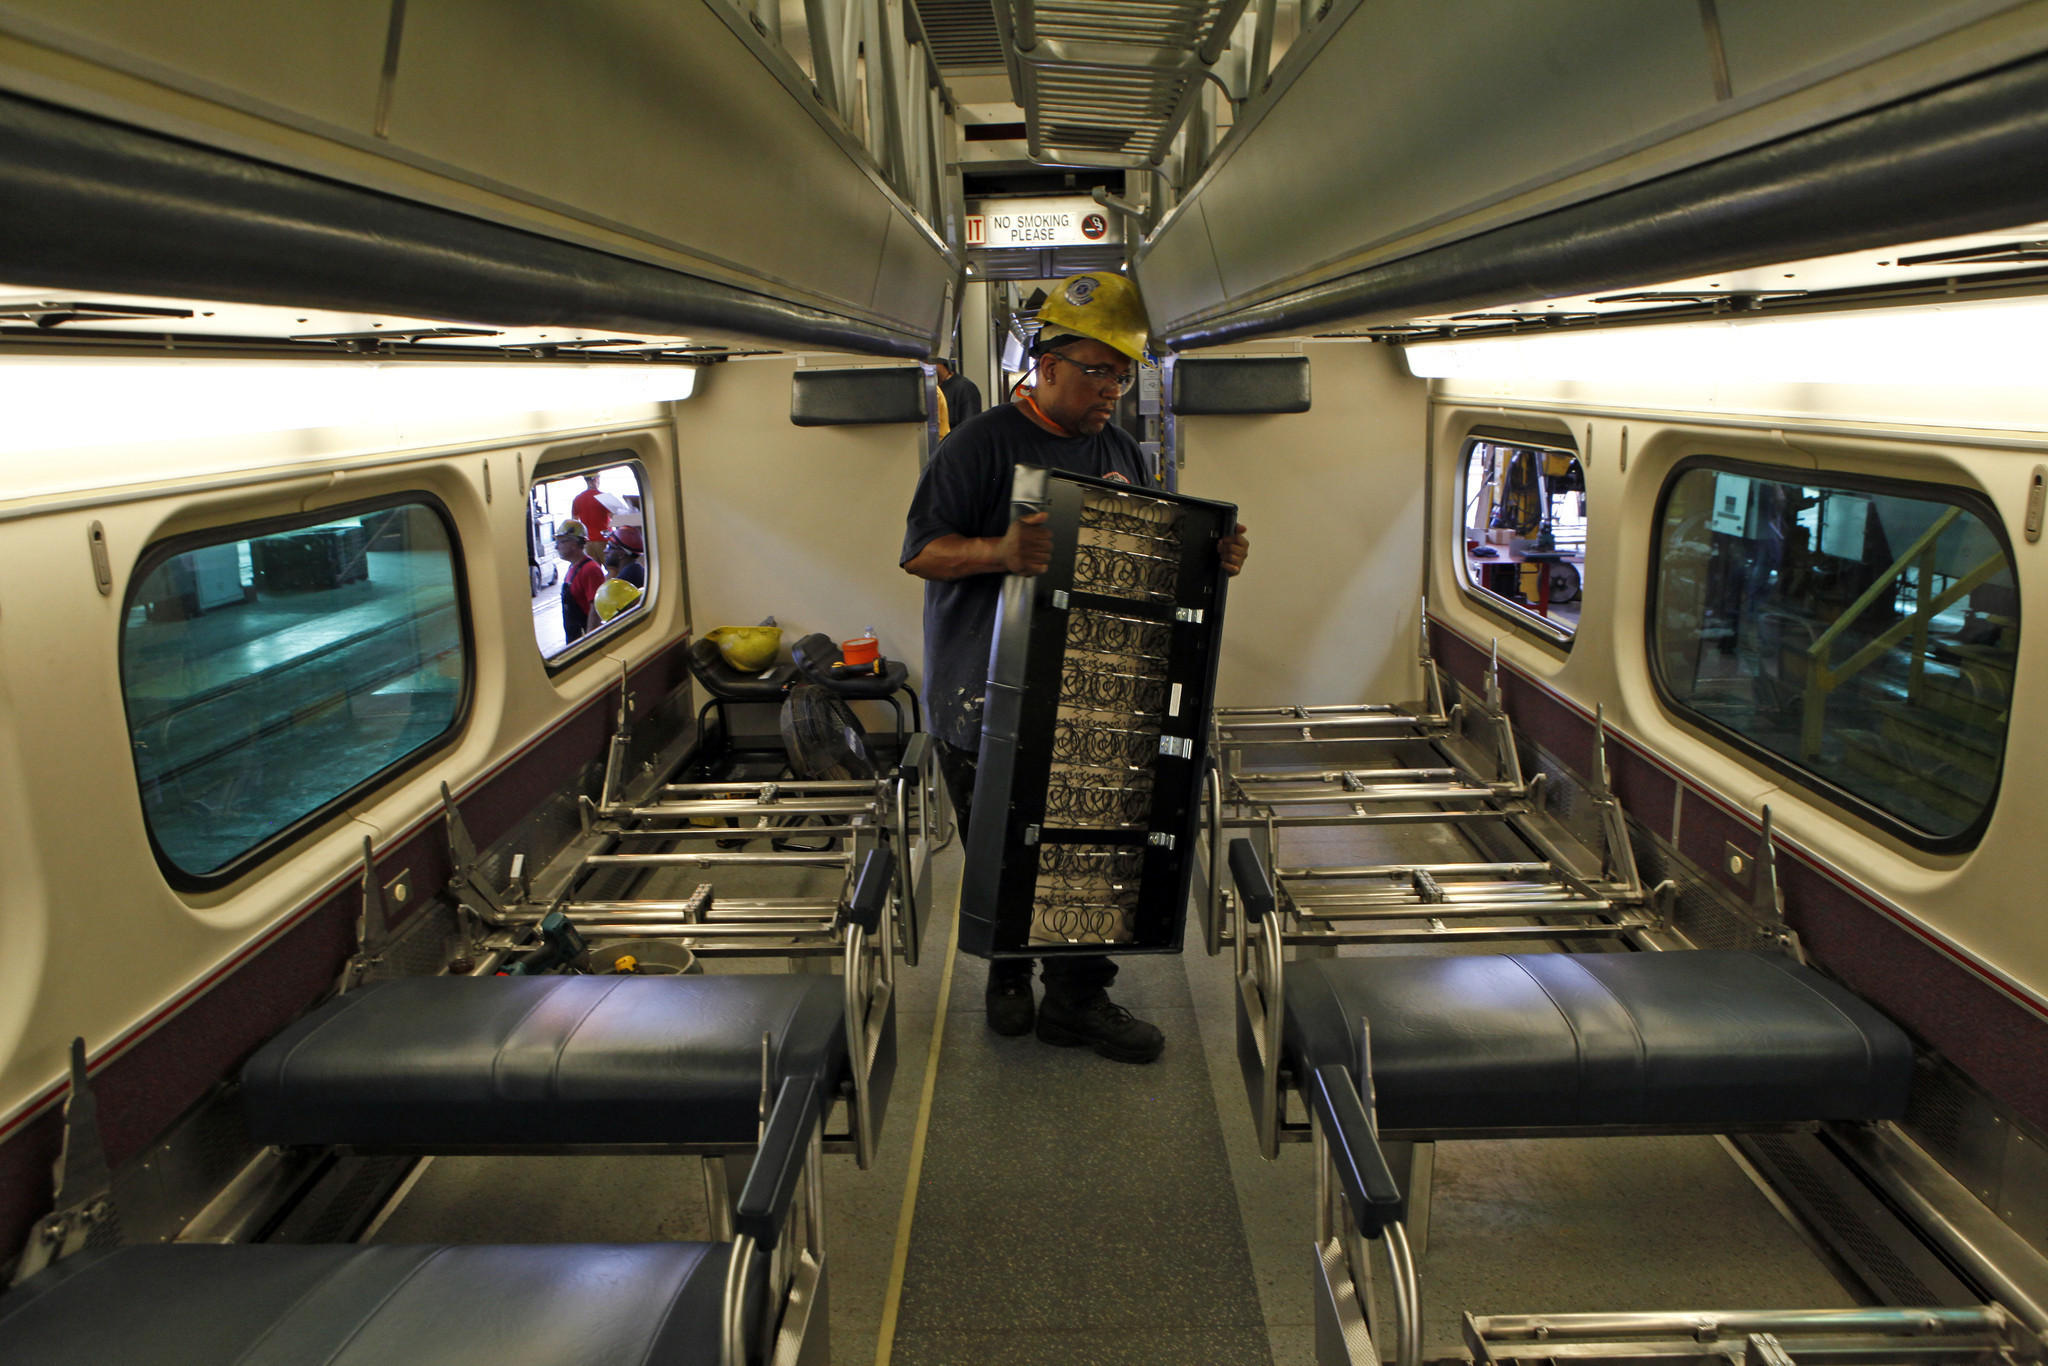 Metra refitting cars with power outlets new toilets